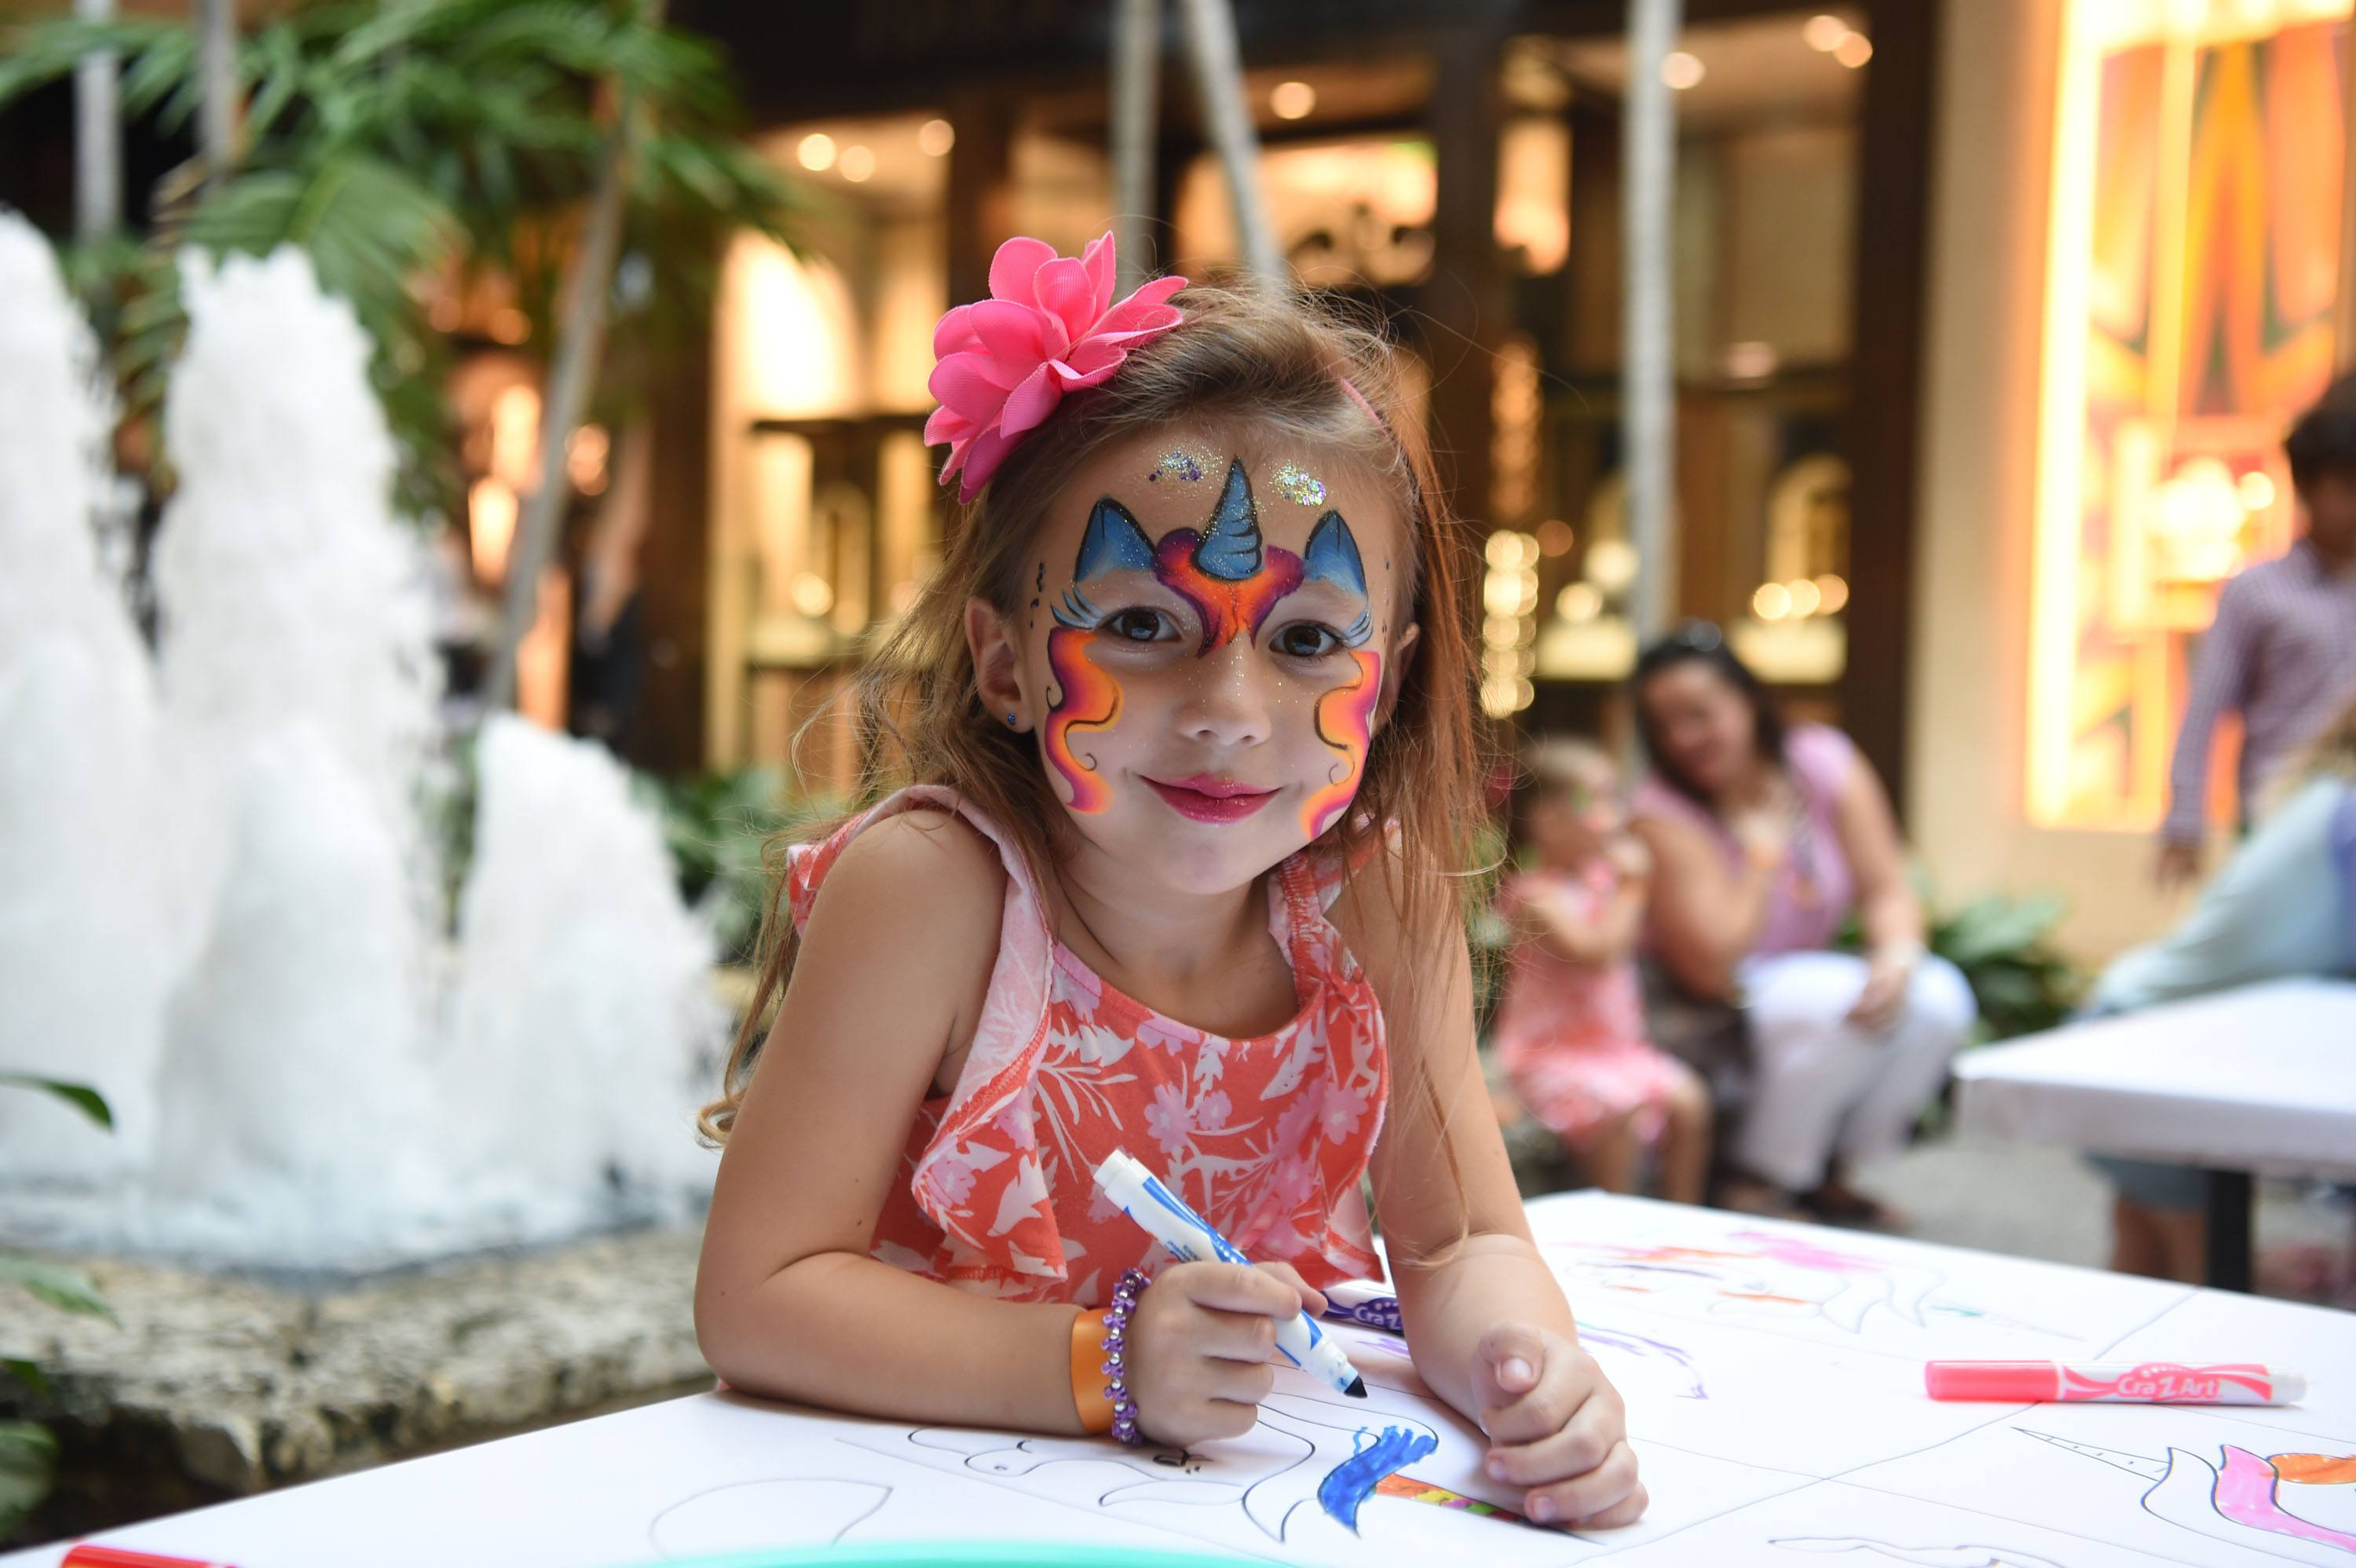 Activations were placed throughout the Shops for children of all ages, from face painting to drawing on graffiti tables and a fun station set up by Neiman Marcus